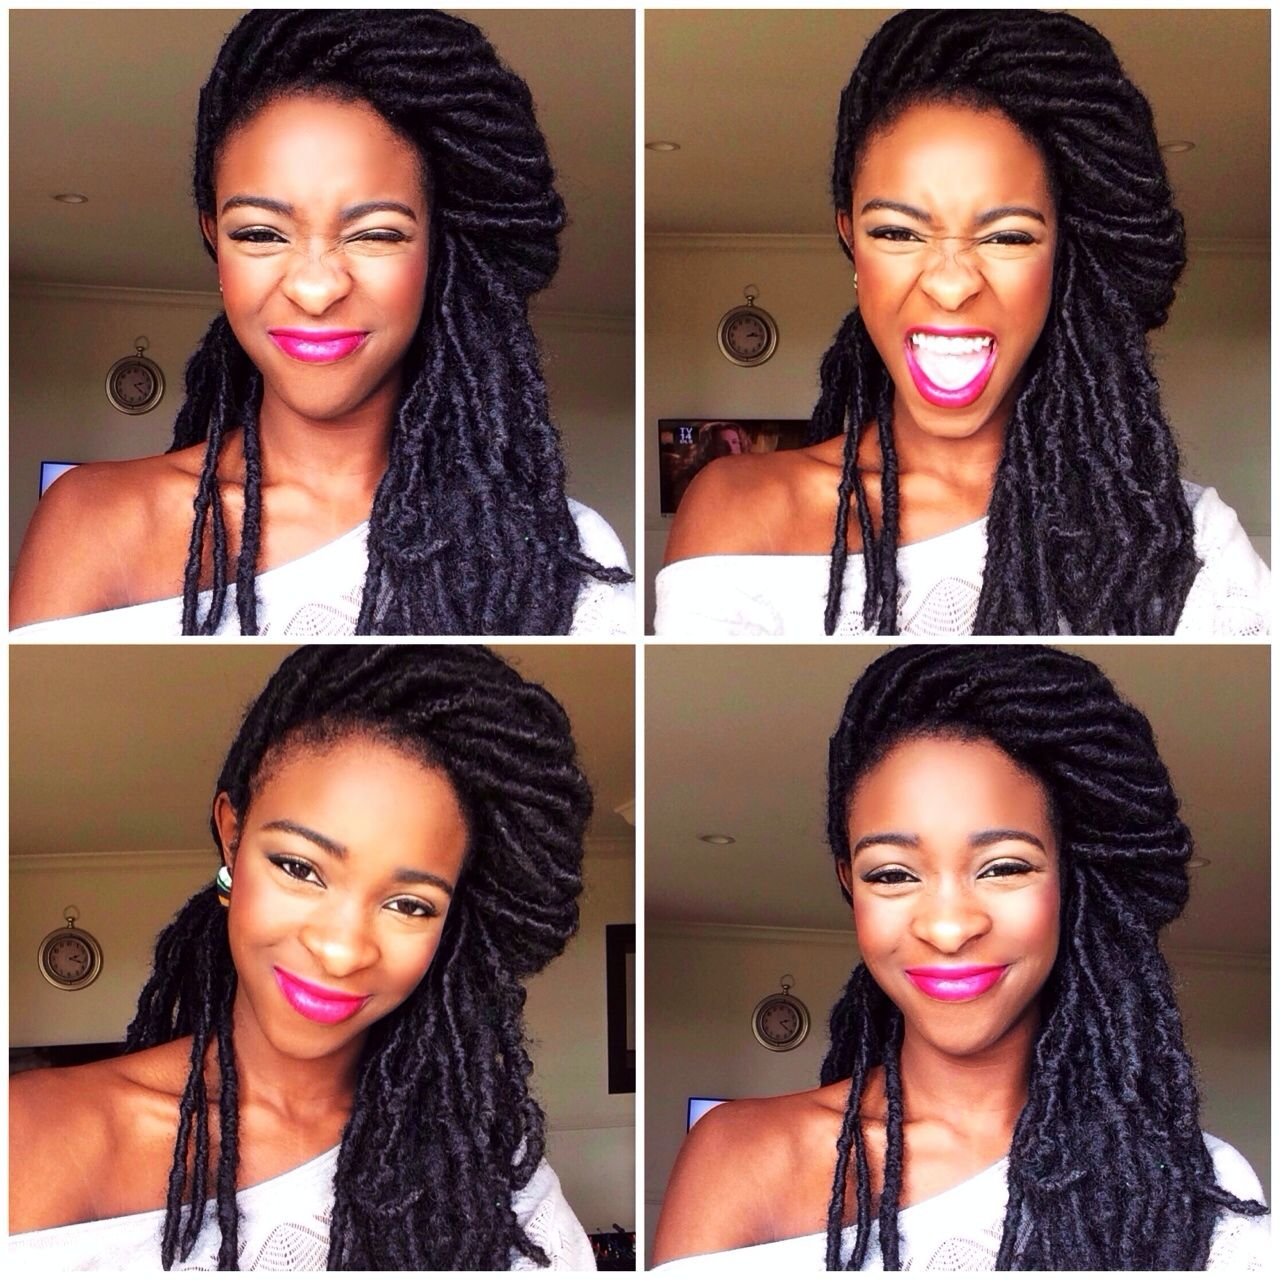 marley twists hairstyles pinterest - google search | hair